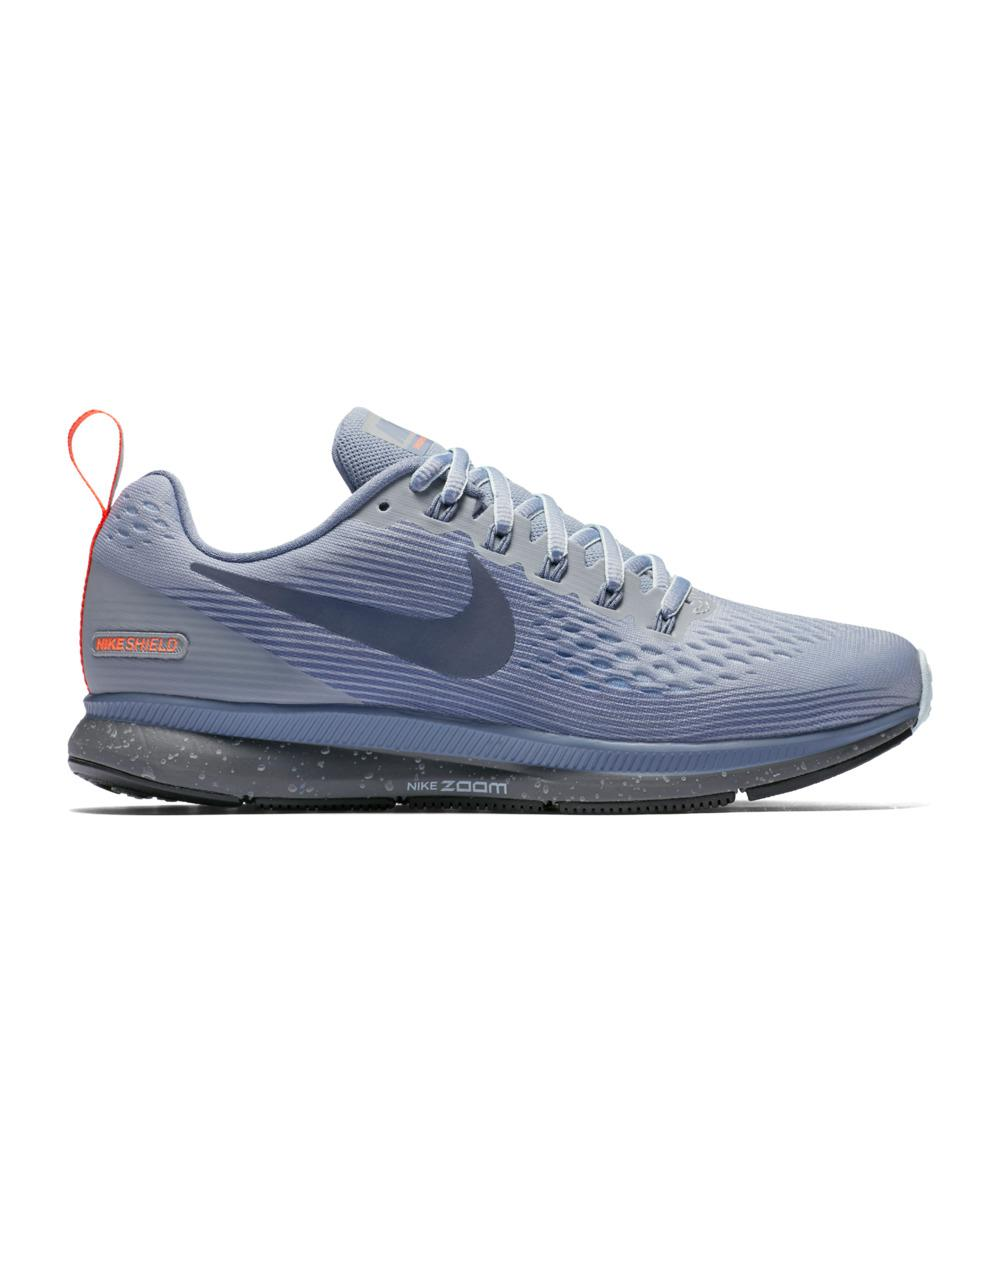 Nike. Women's Blue Air Zoom Pegasus 34 Shield Running Shoes